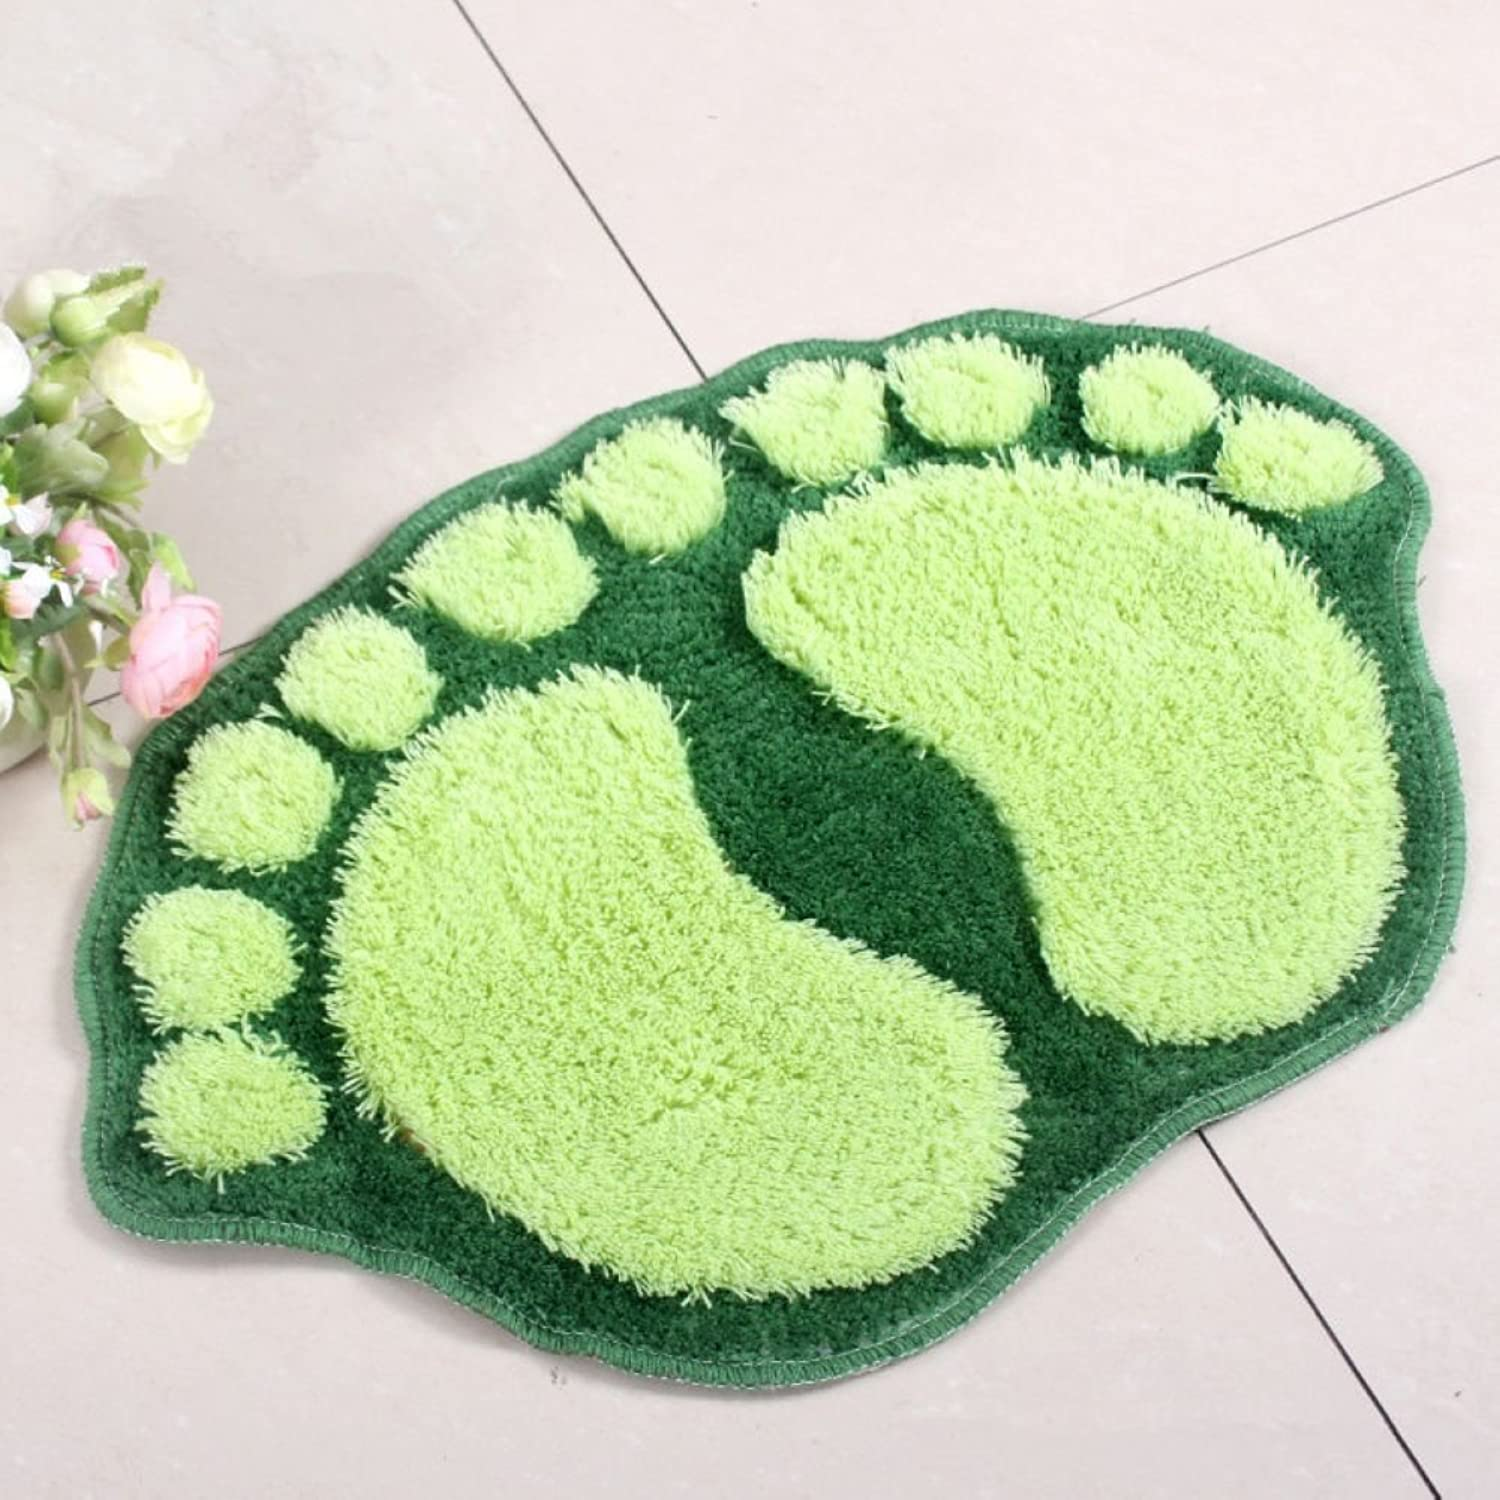 Judy Dre am Big Feet Mats Doormat The Bathroom Floor Mat Bedroom Rugs Green 20WideX31.5Long(Inch)